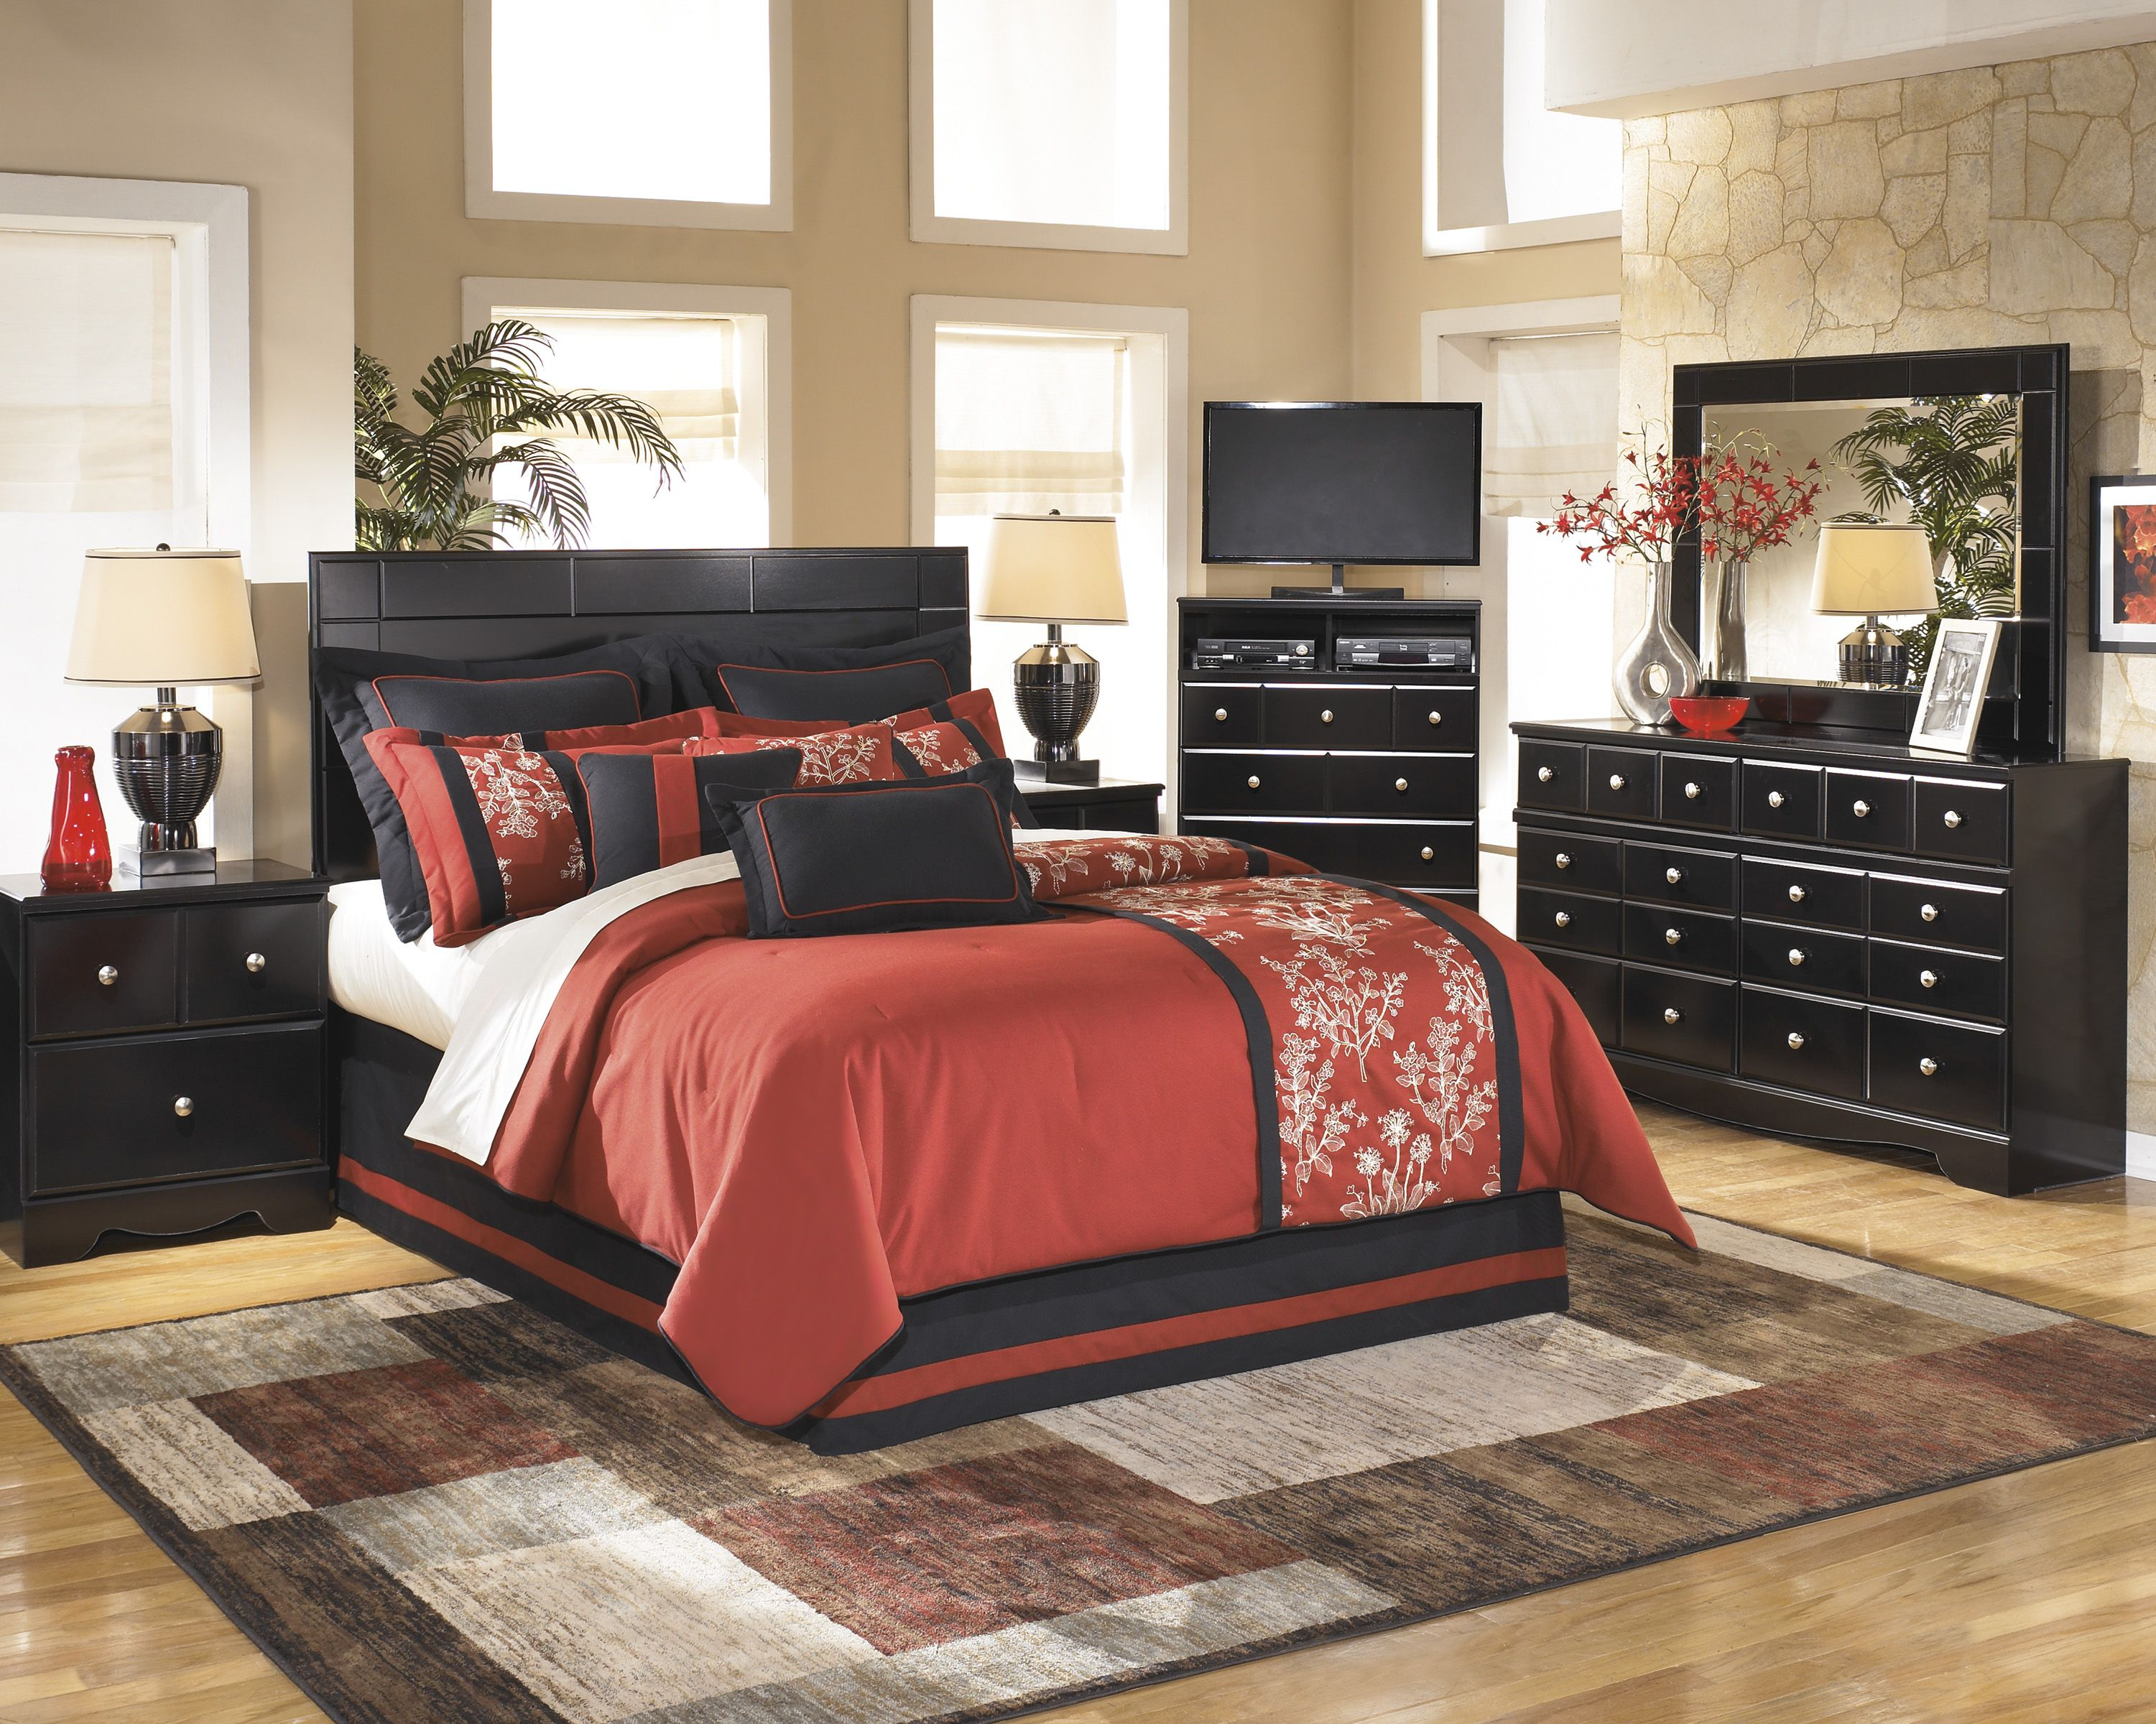 Master bedroom with rich red bedding Stunning